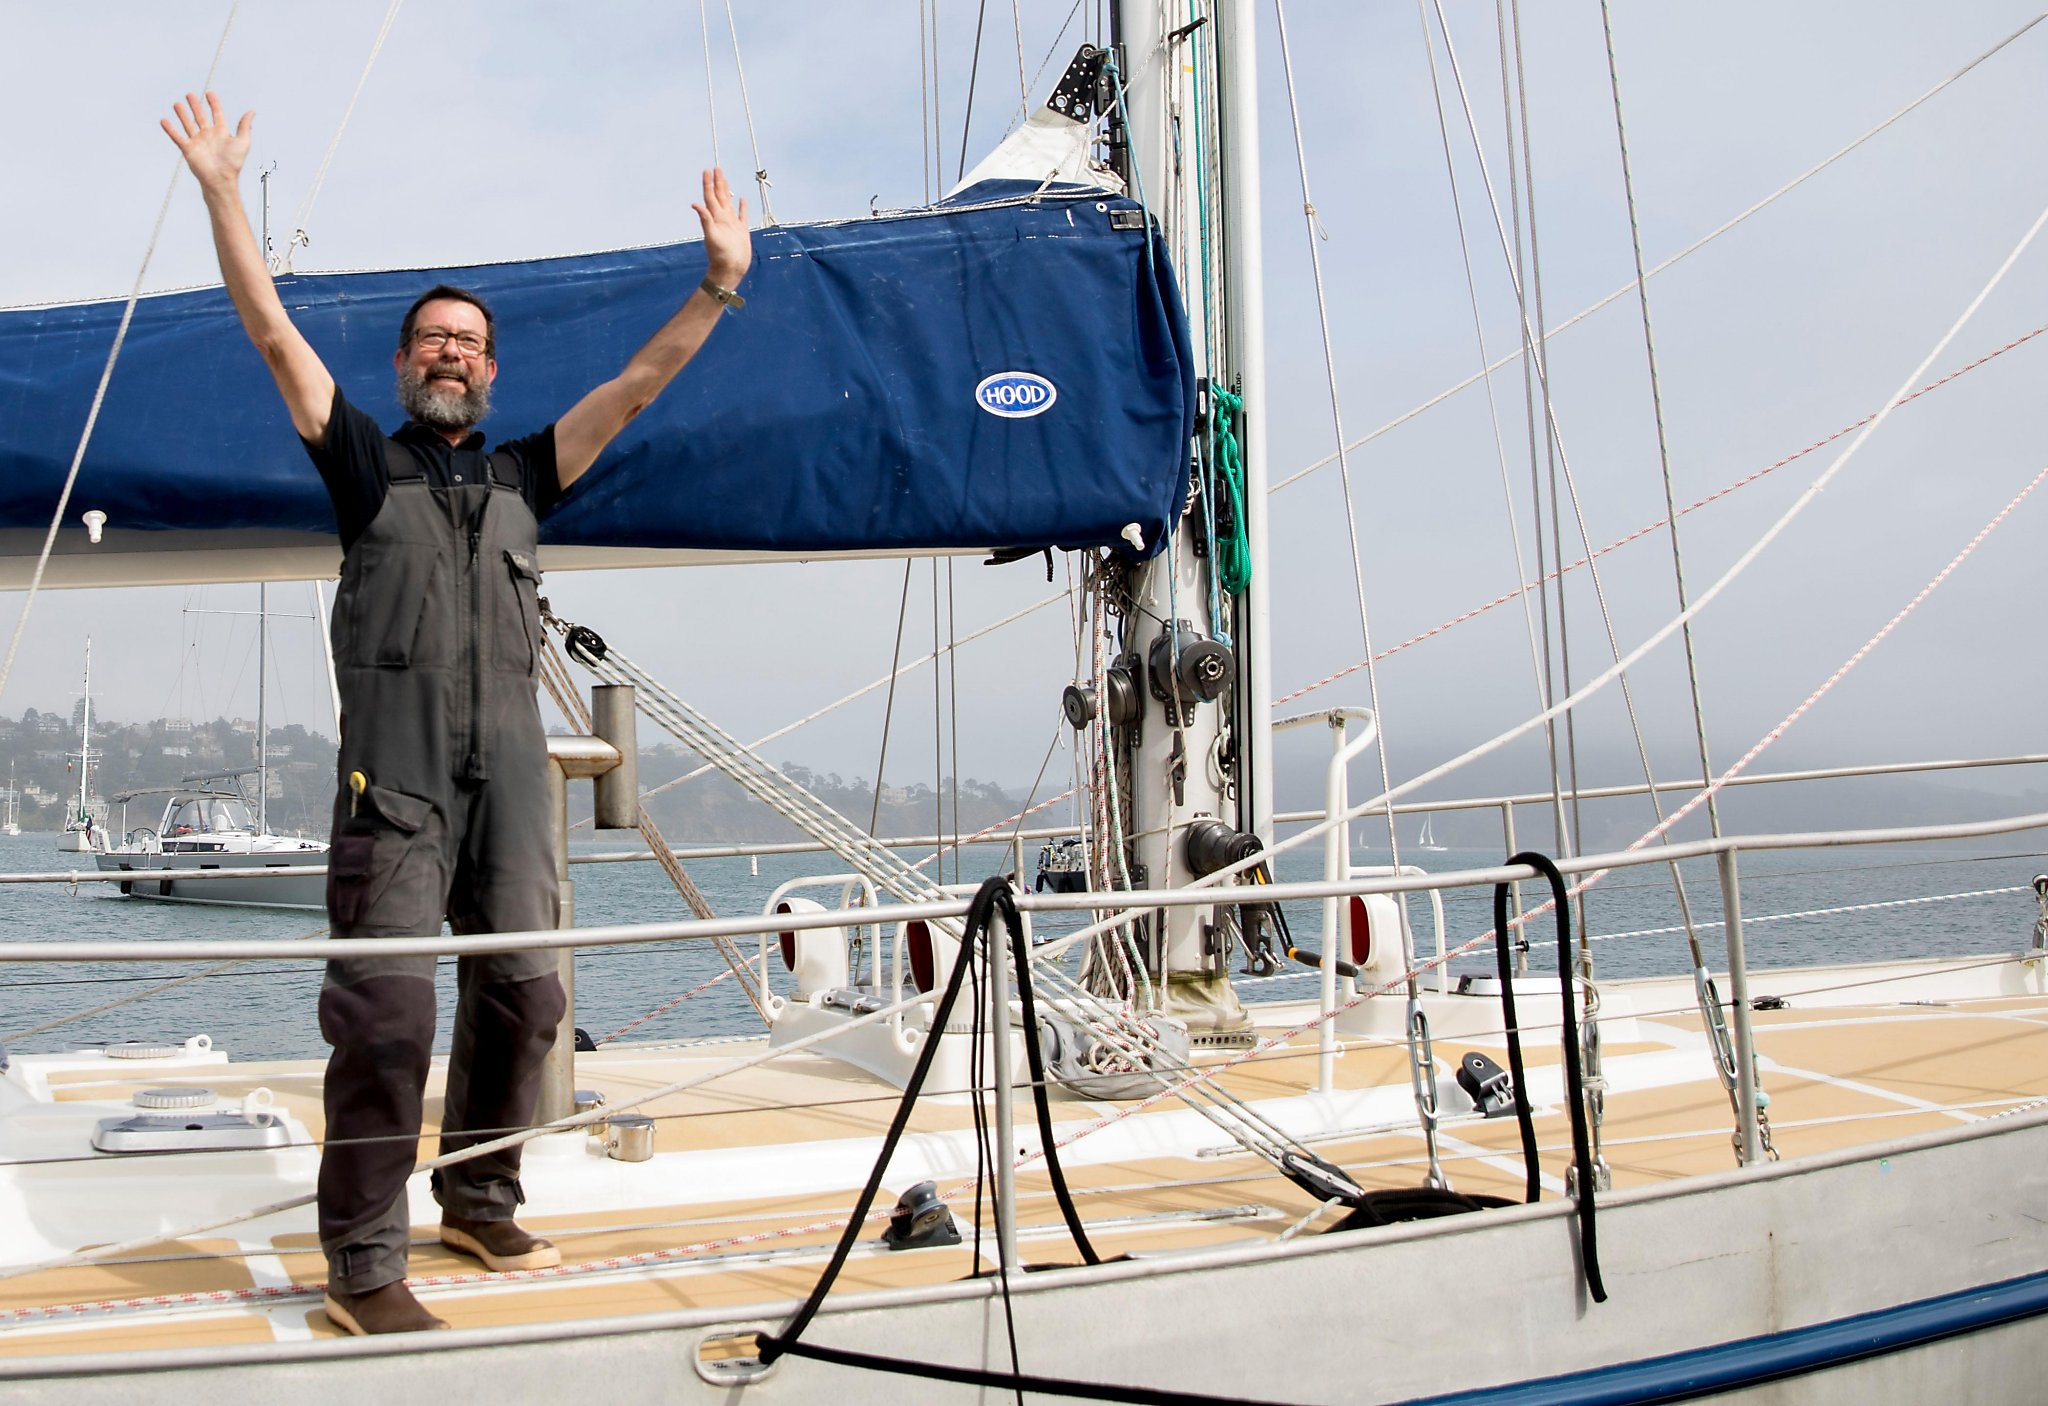 Solo sailor arrives back in Sausalito after a voyage for the ages